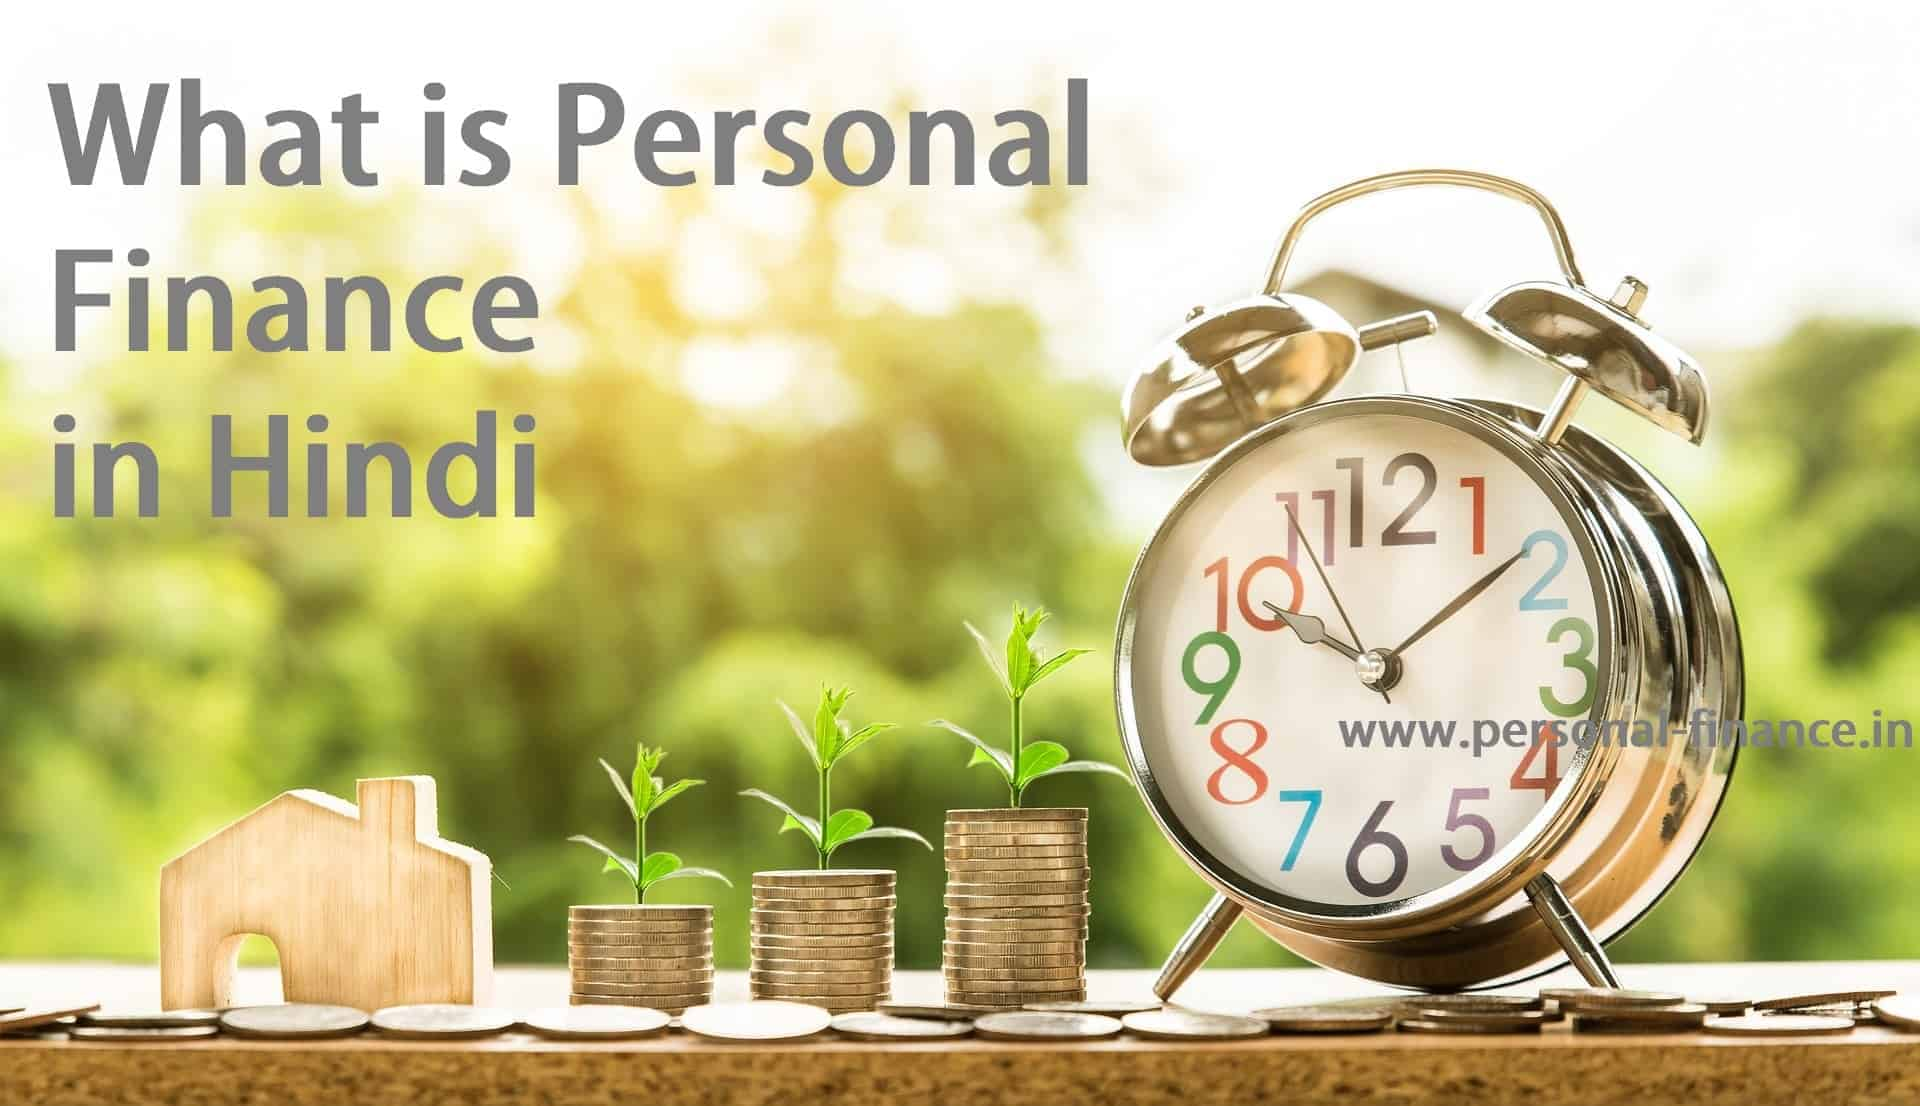 Personal Finance in Hindi image